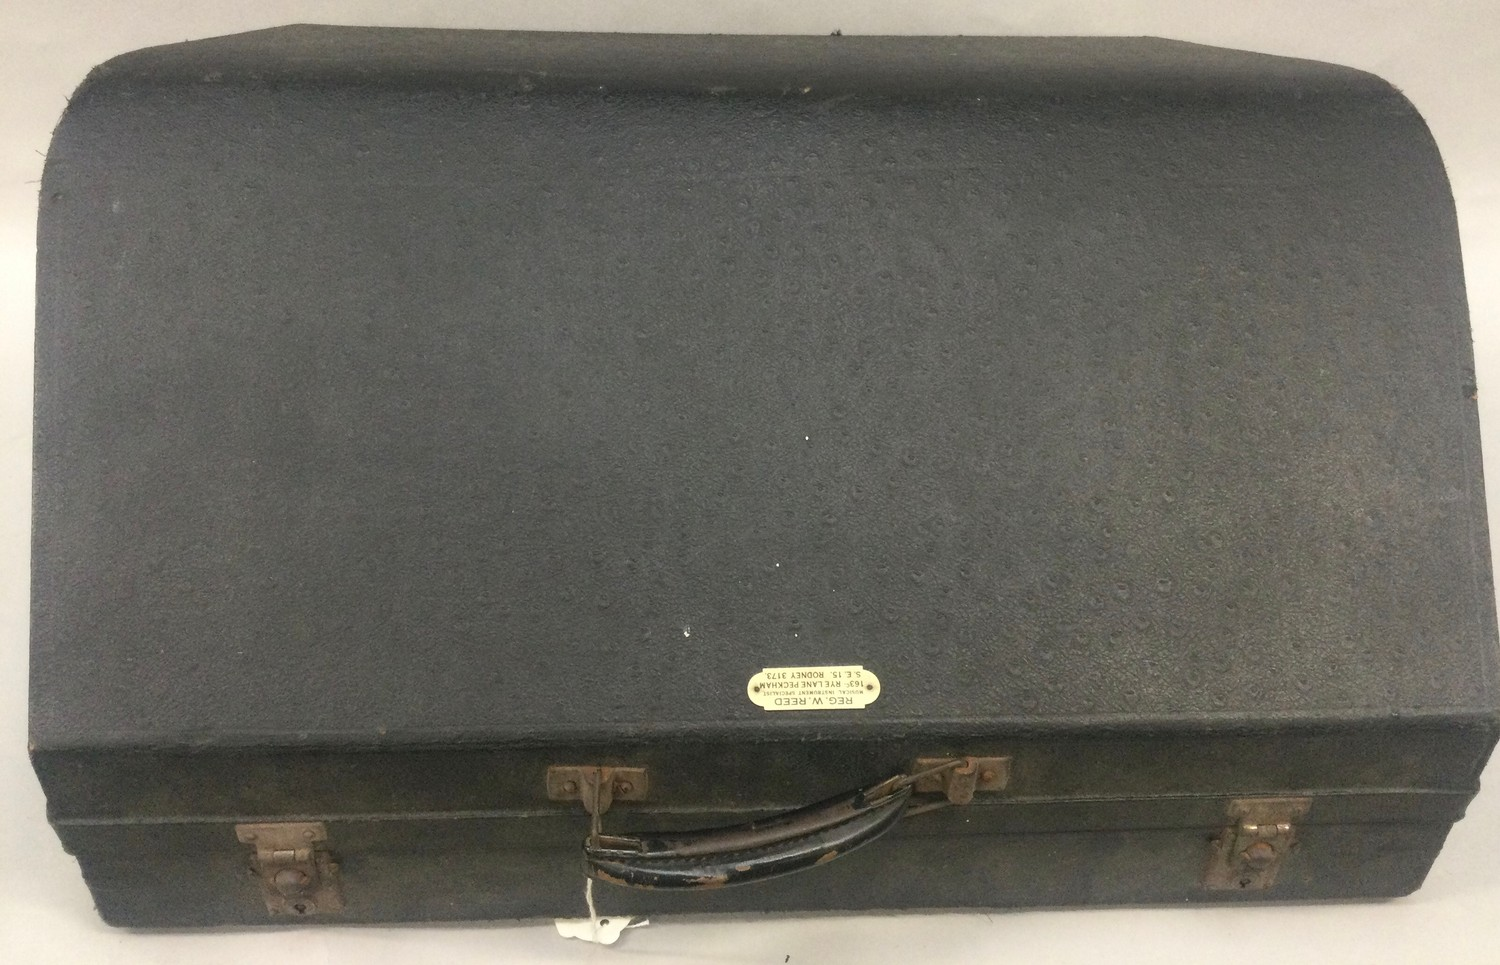 Boxed Symphony 4 accordion. - Image 7 of 7